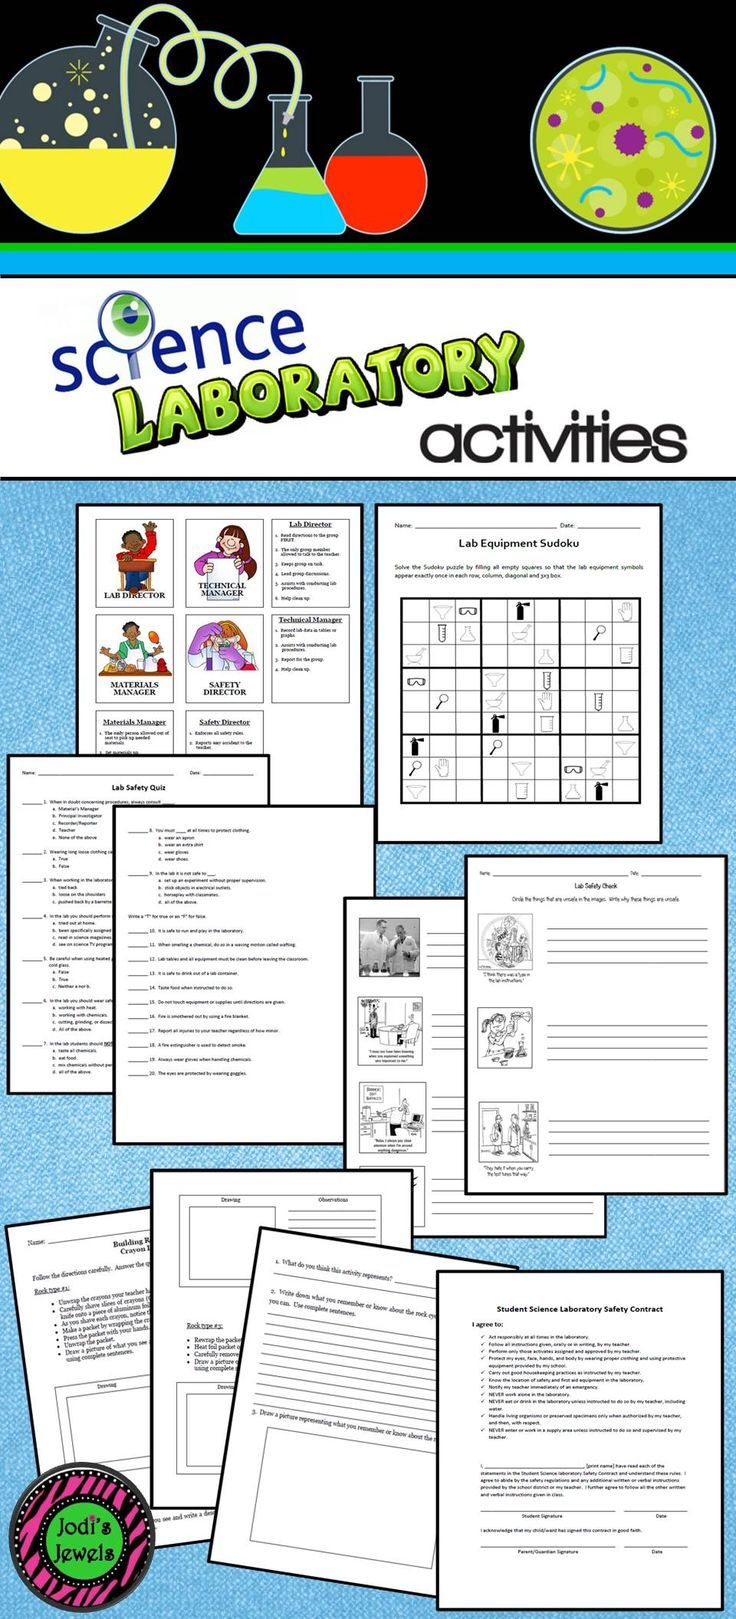 Middle School lab activities by Jodi's Jewels include ...